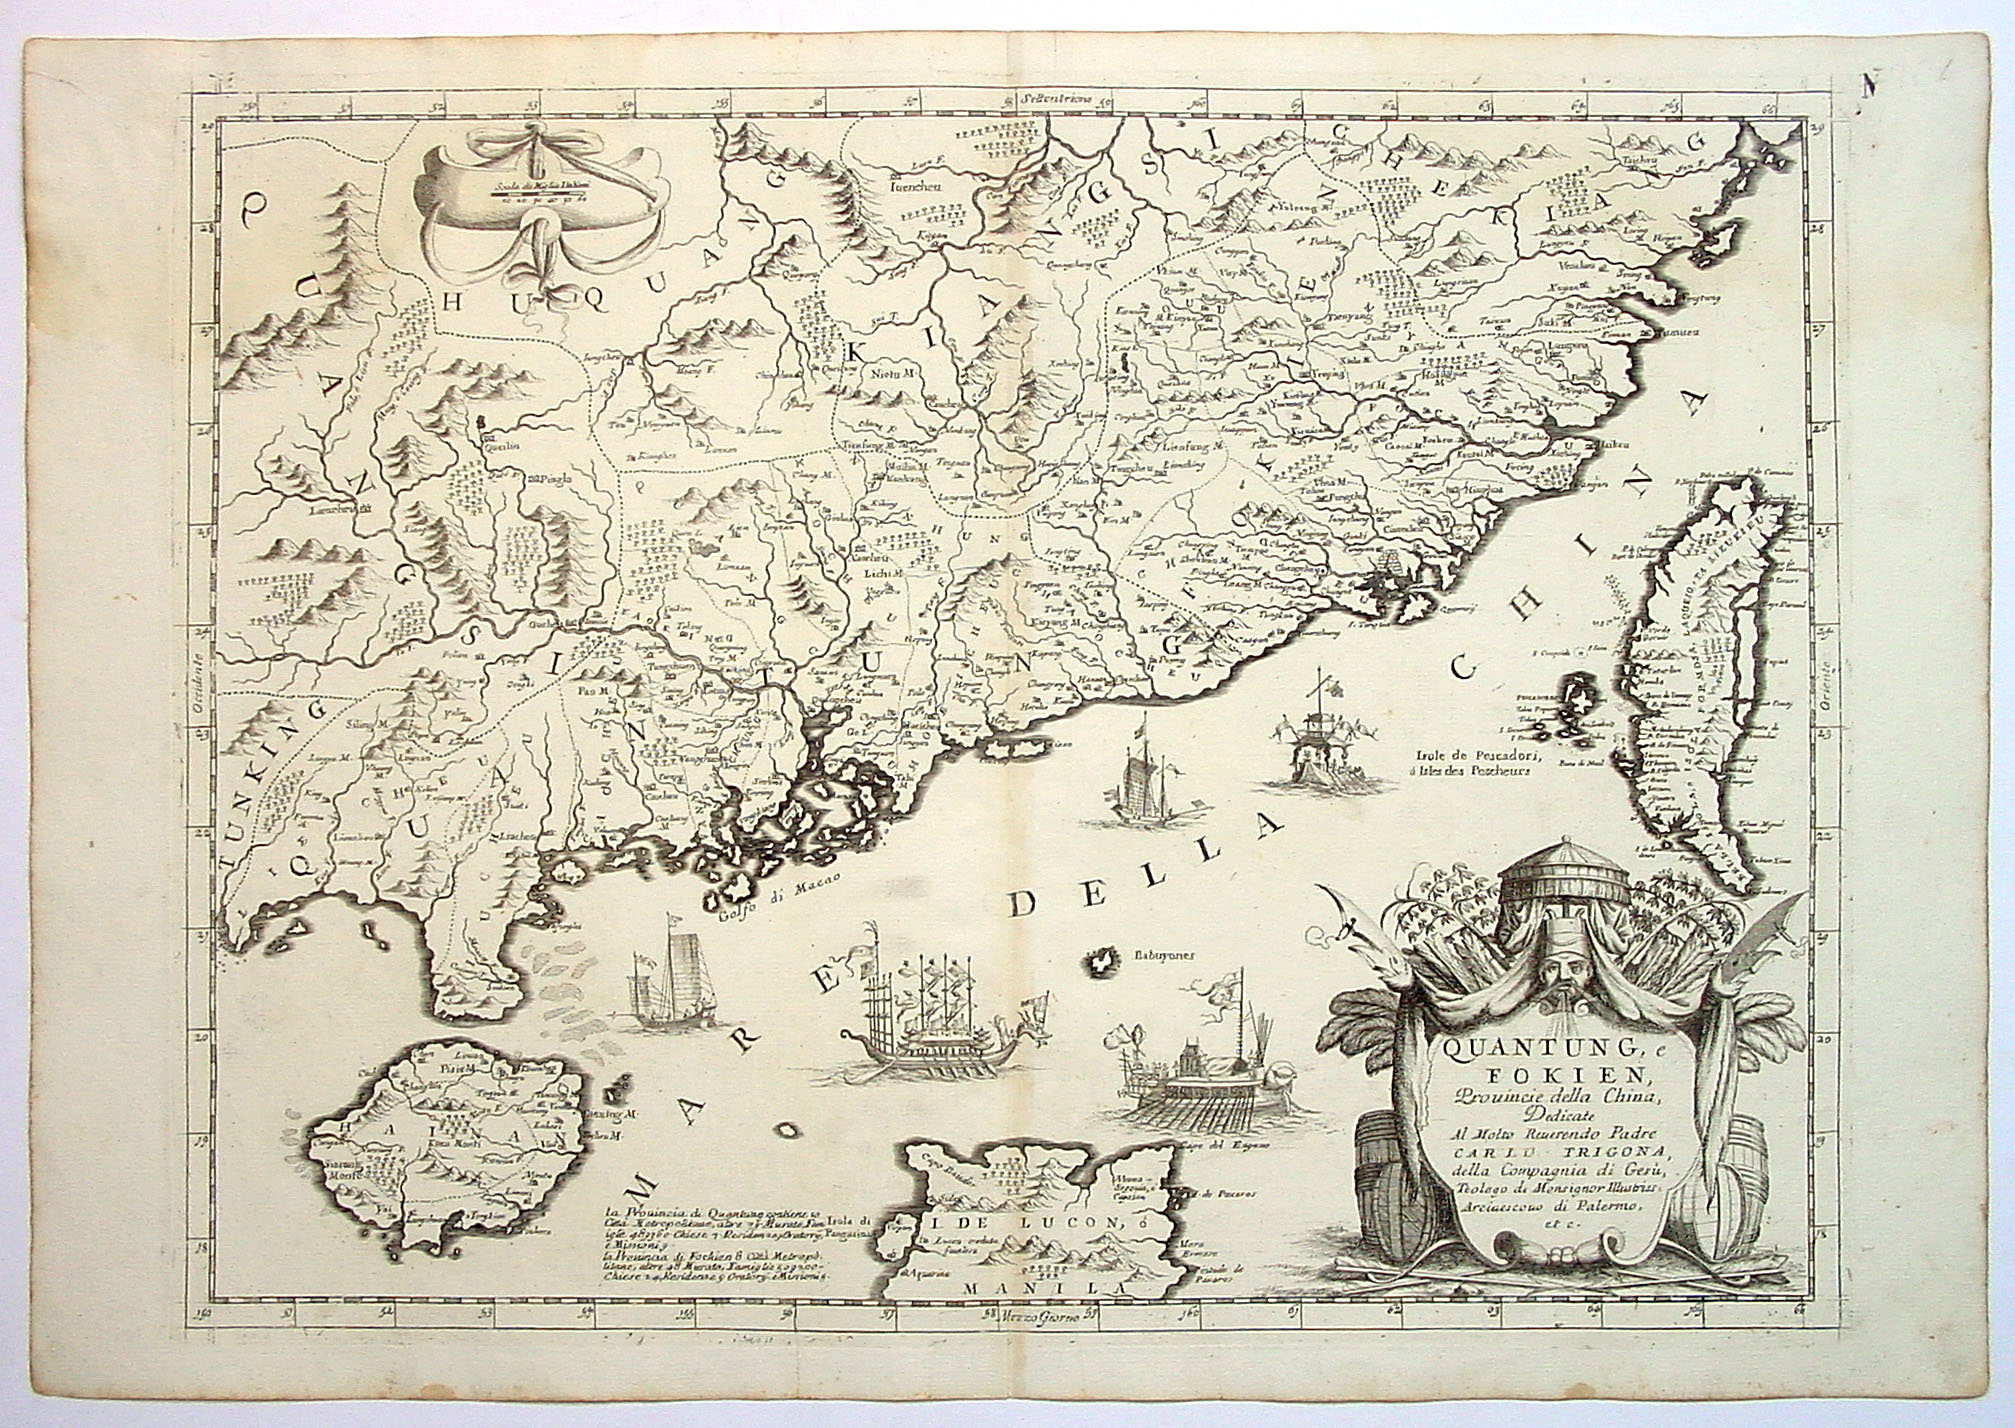 File:Quantung,Fokien (Coronelli Map of Hong Kong, Formosa).jpg ... on raiders of the lost ark map, lone survivor map, headless horseman map, national treasure map, the hunger games map, the lion king map, a princess of mars map, the ring map, saving private ryan map, robin hood map, jurassic park map, the most dangerous game map, monsters university map,